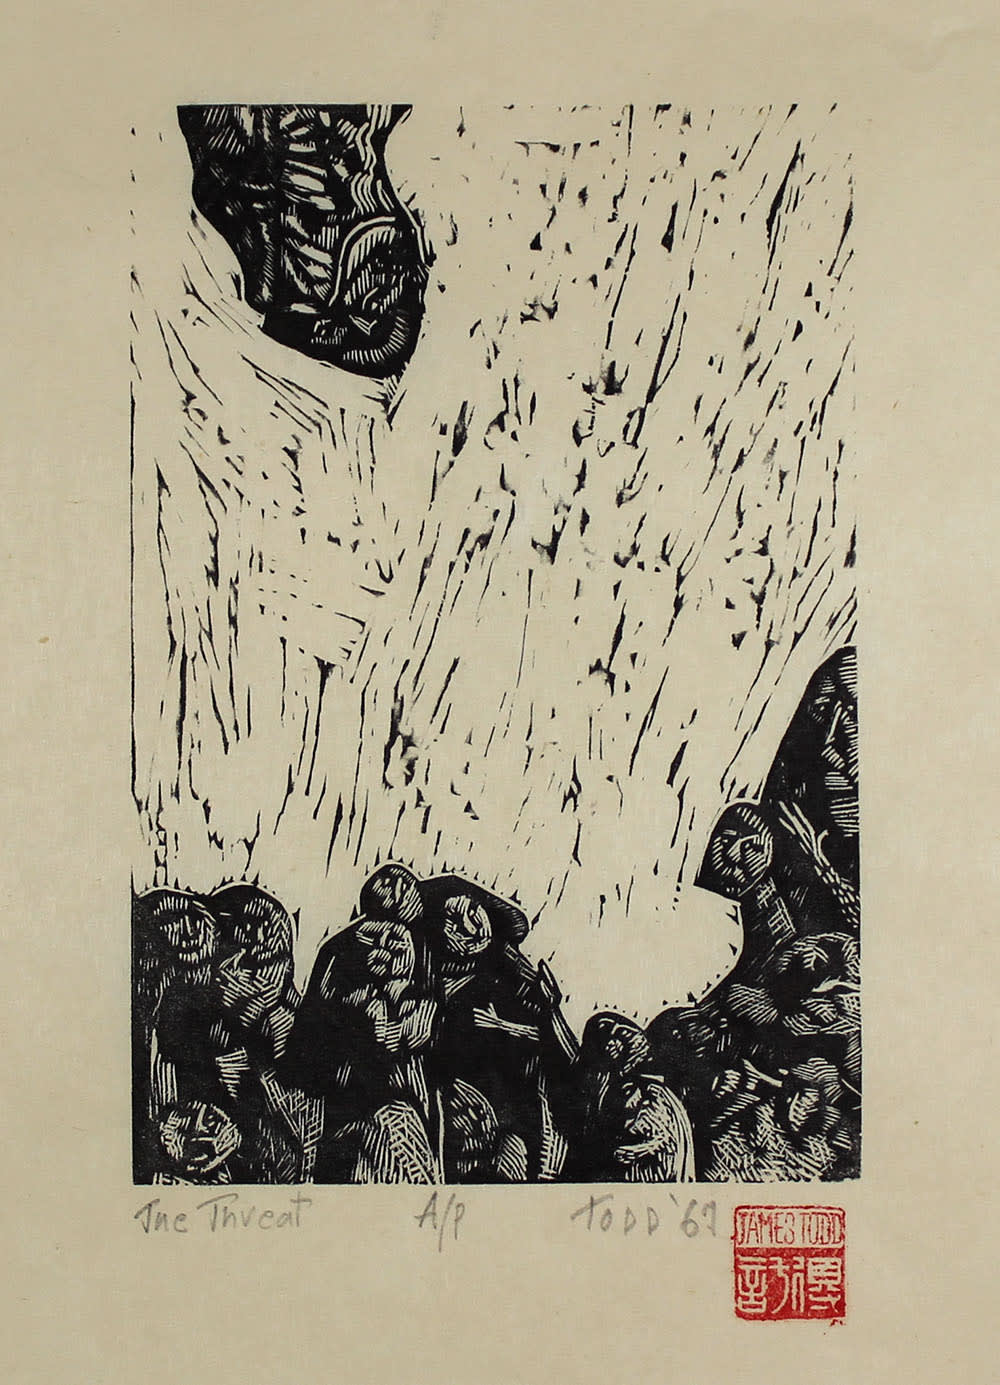 James G. Todd, The Threat, 1966